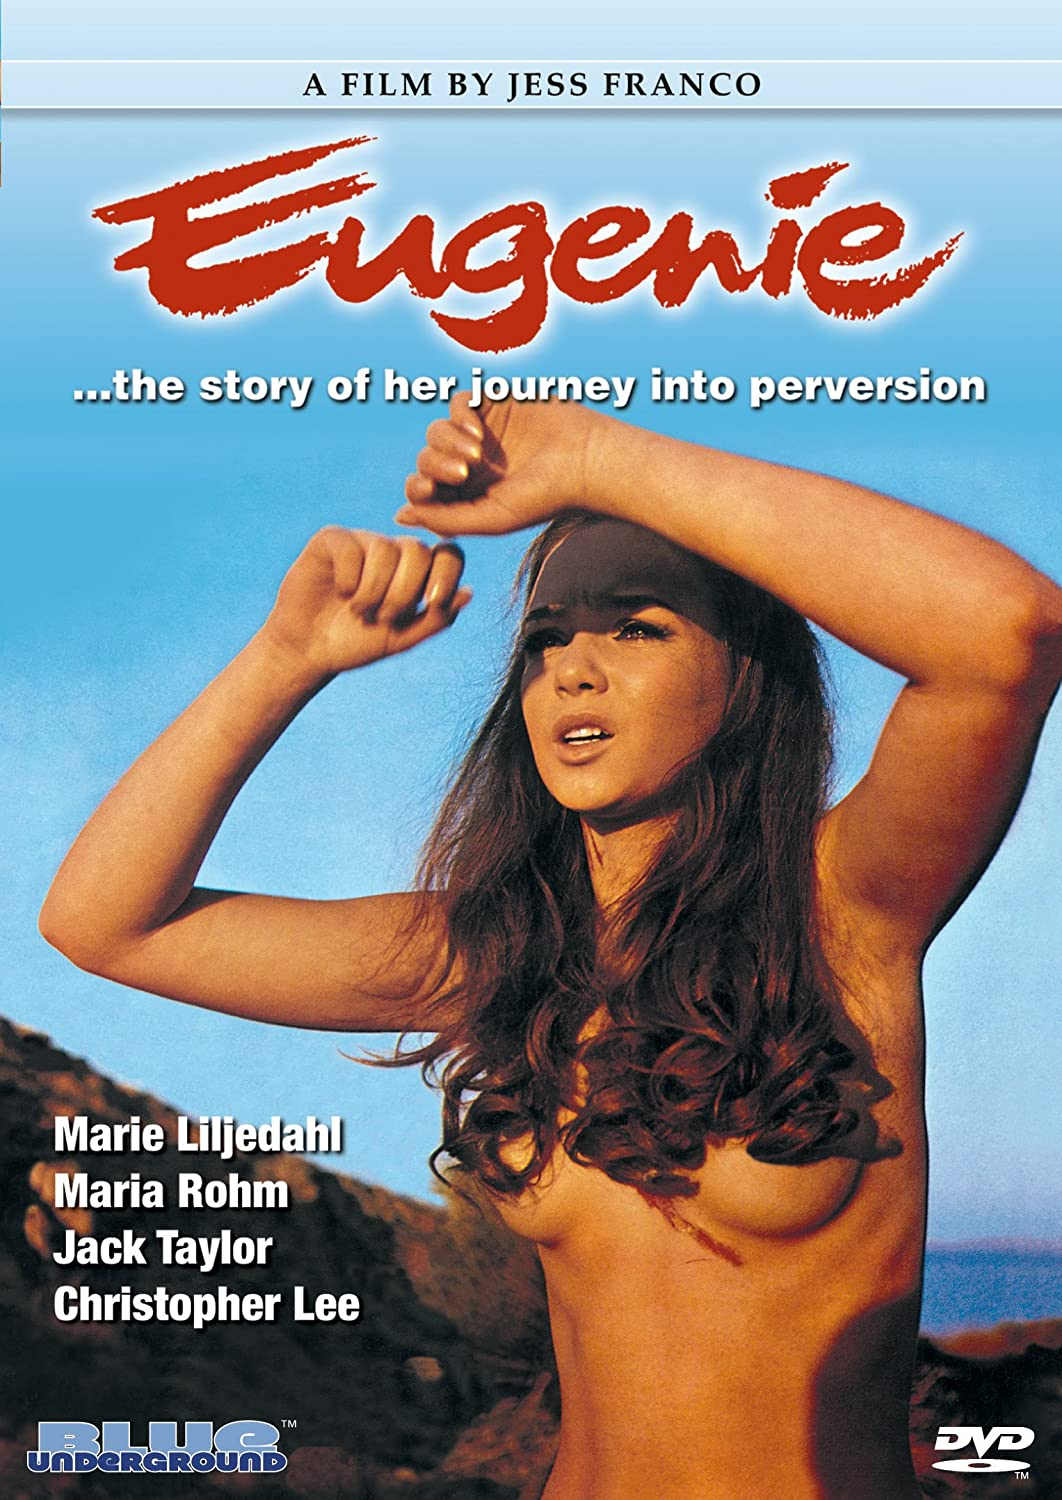 Eugenie - The Story Of Her Journey Into Perversion (Bilingual) Marie Liljedhal Maria Rohm Jack Taylor Christopher Lee